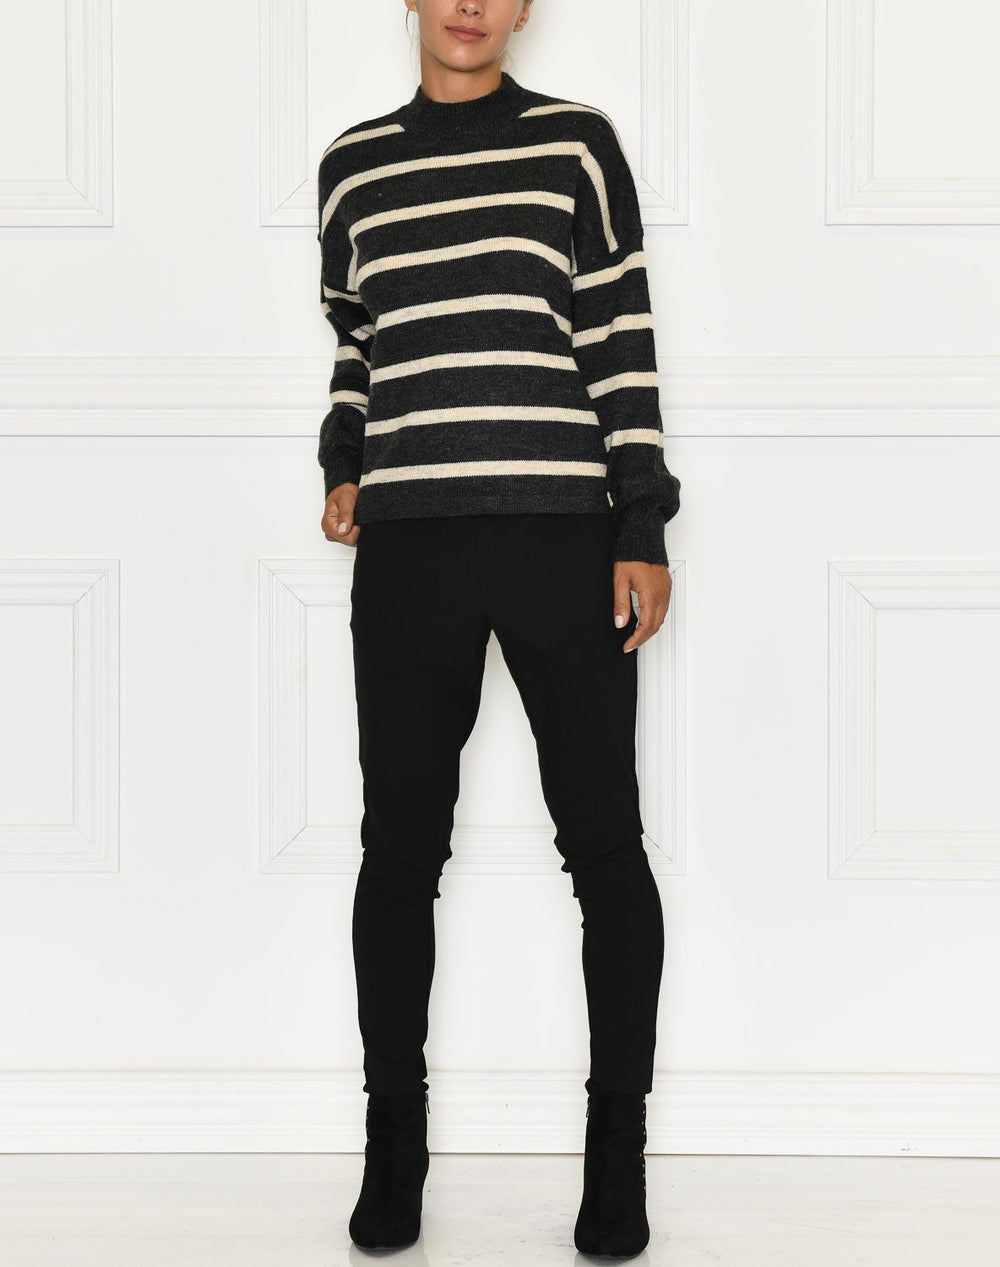 Soft Rebels Patia T-neck knit black - Online-Mode